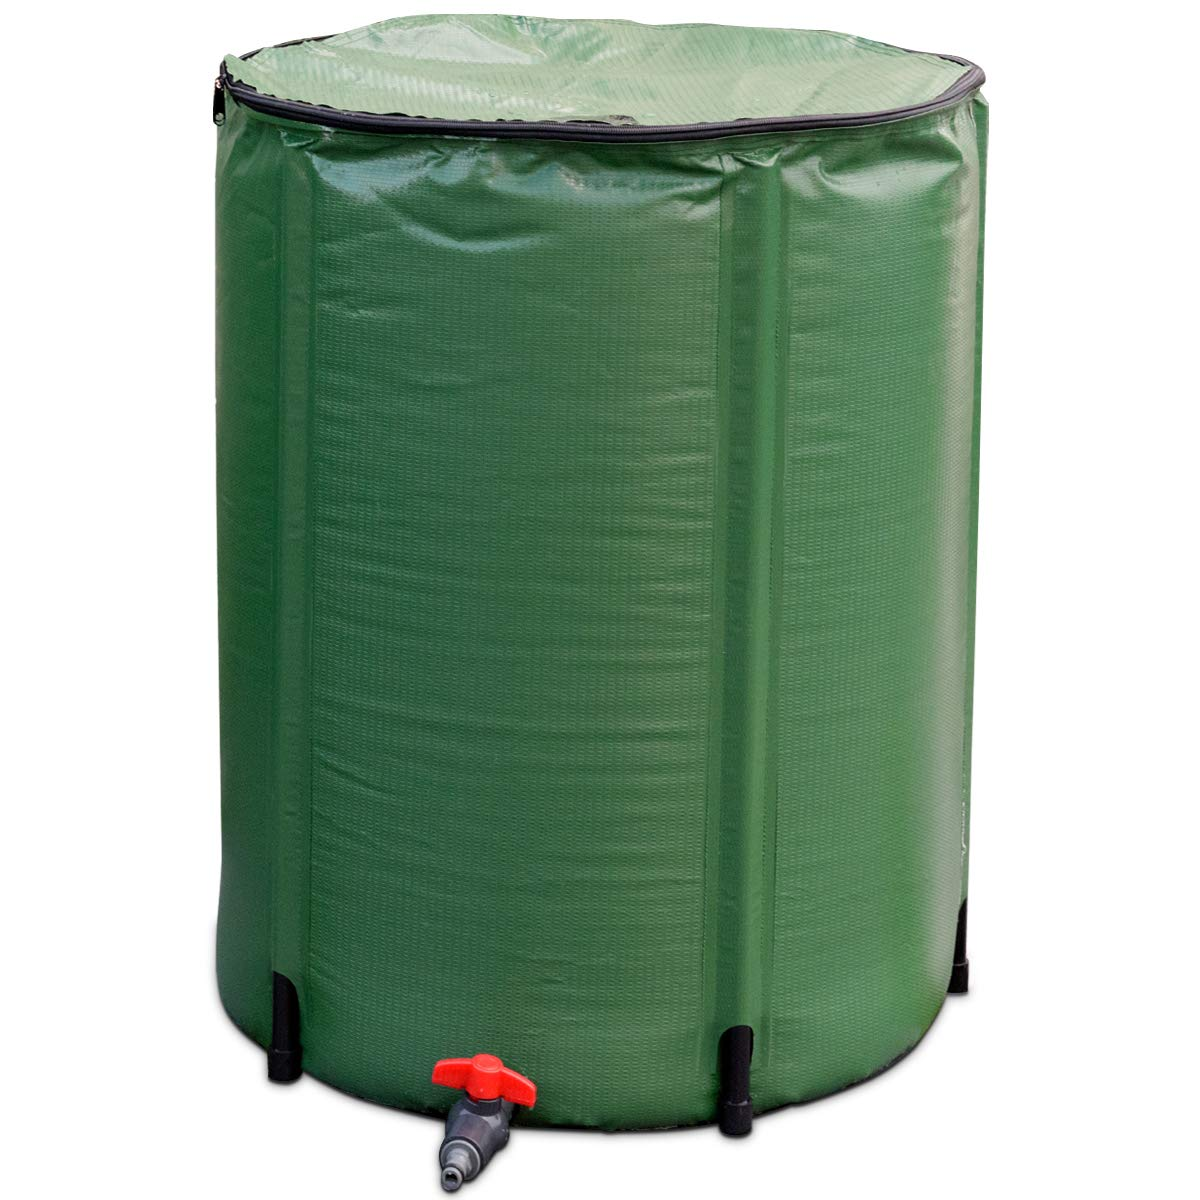 Goplus 60 Gallon Portable Rain Barrel Water Collector Collapsible Tank w/Spigot Filter Water Storage Container